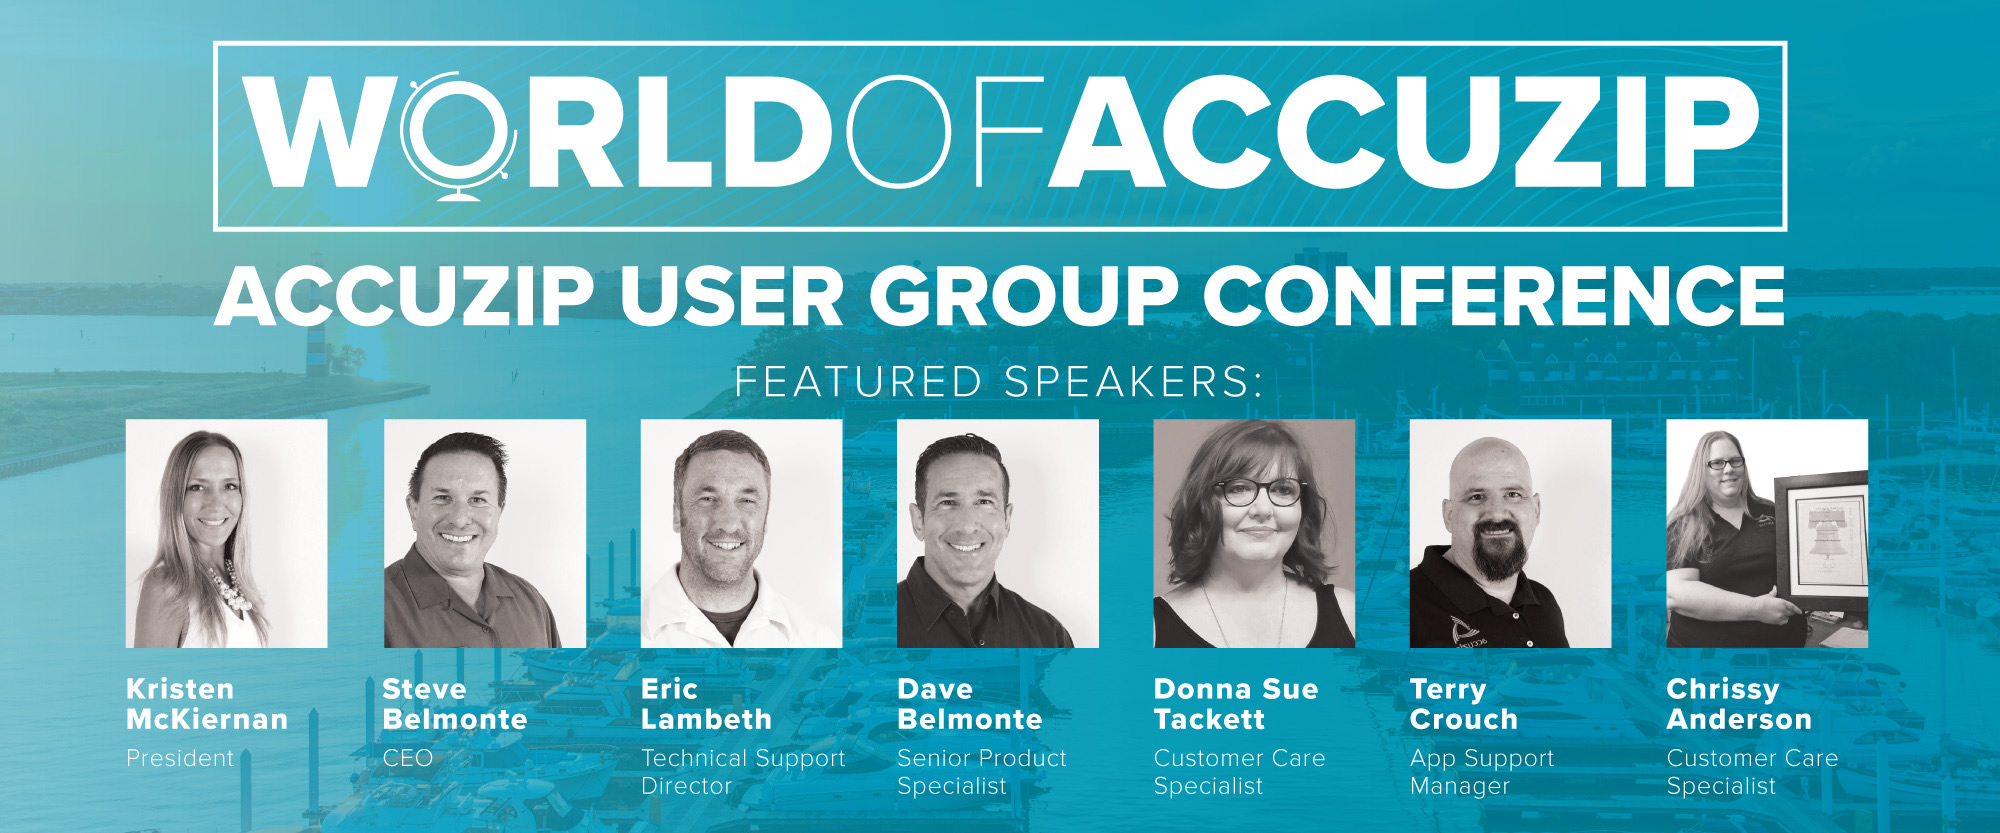 AccuZIP User Group Conference